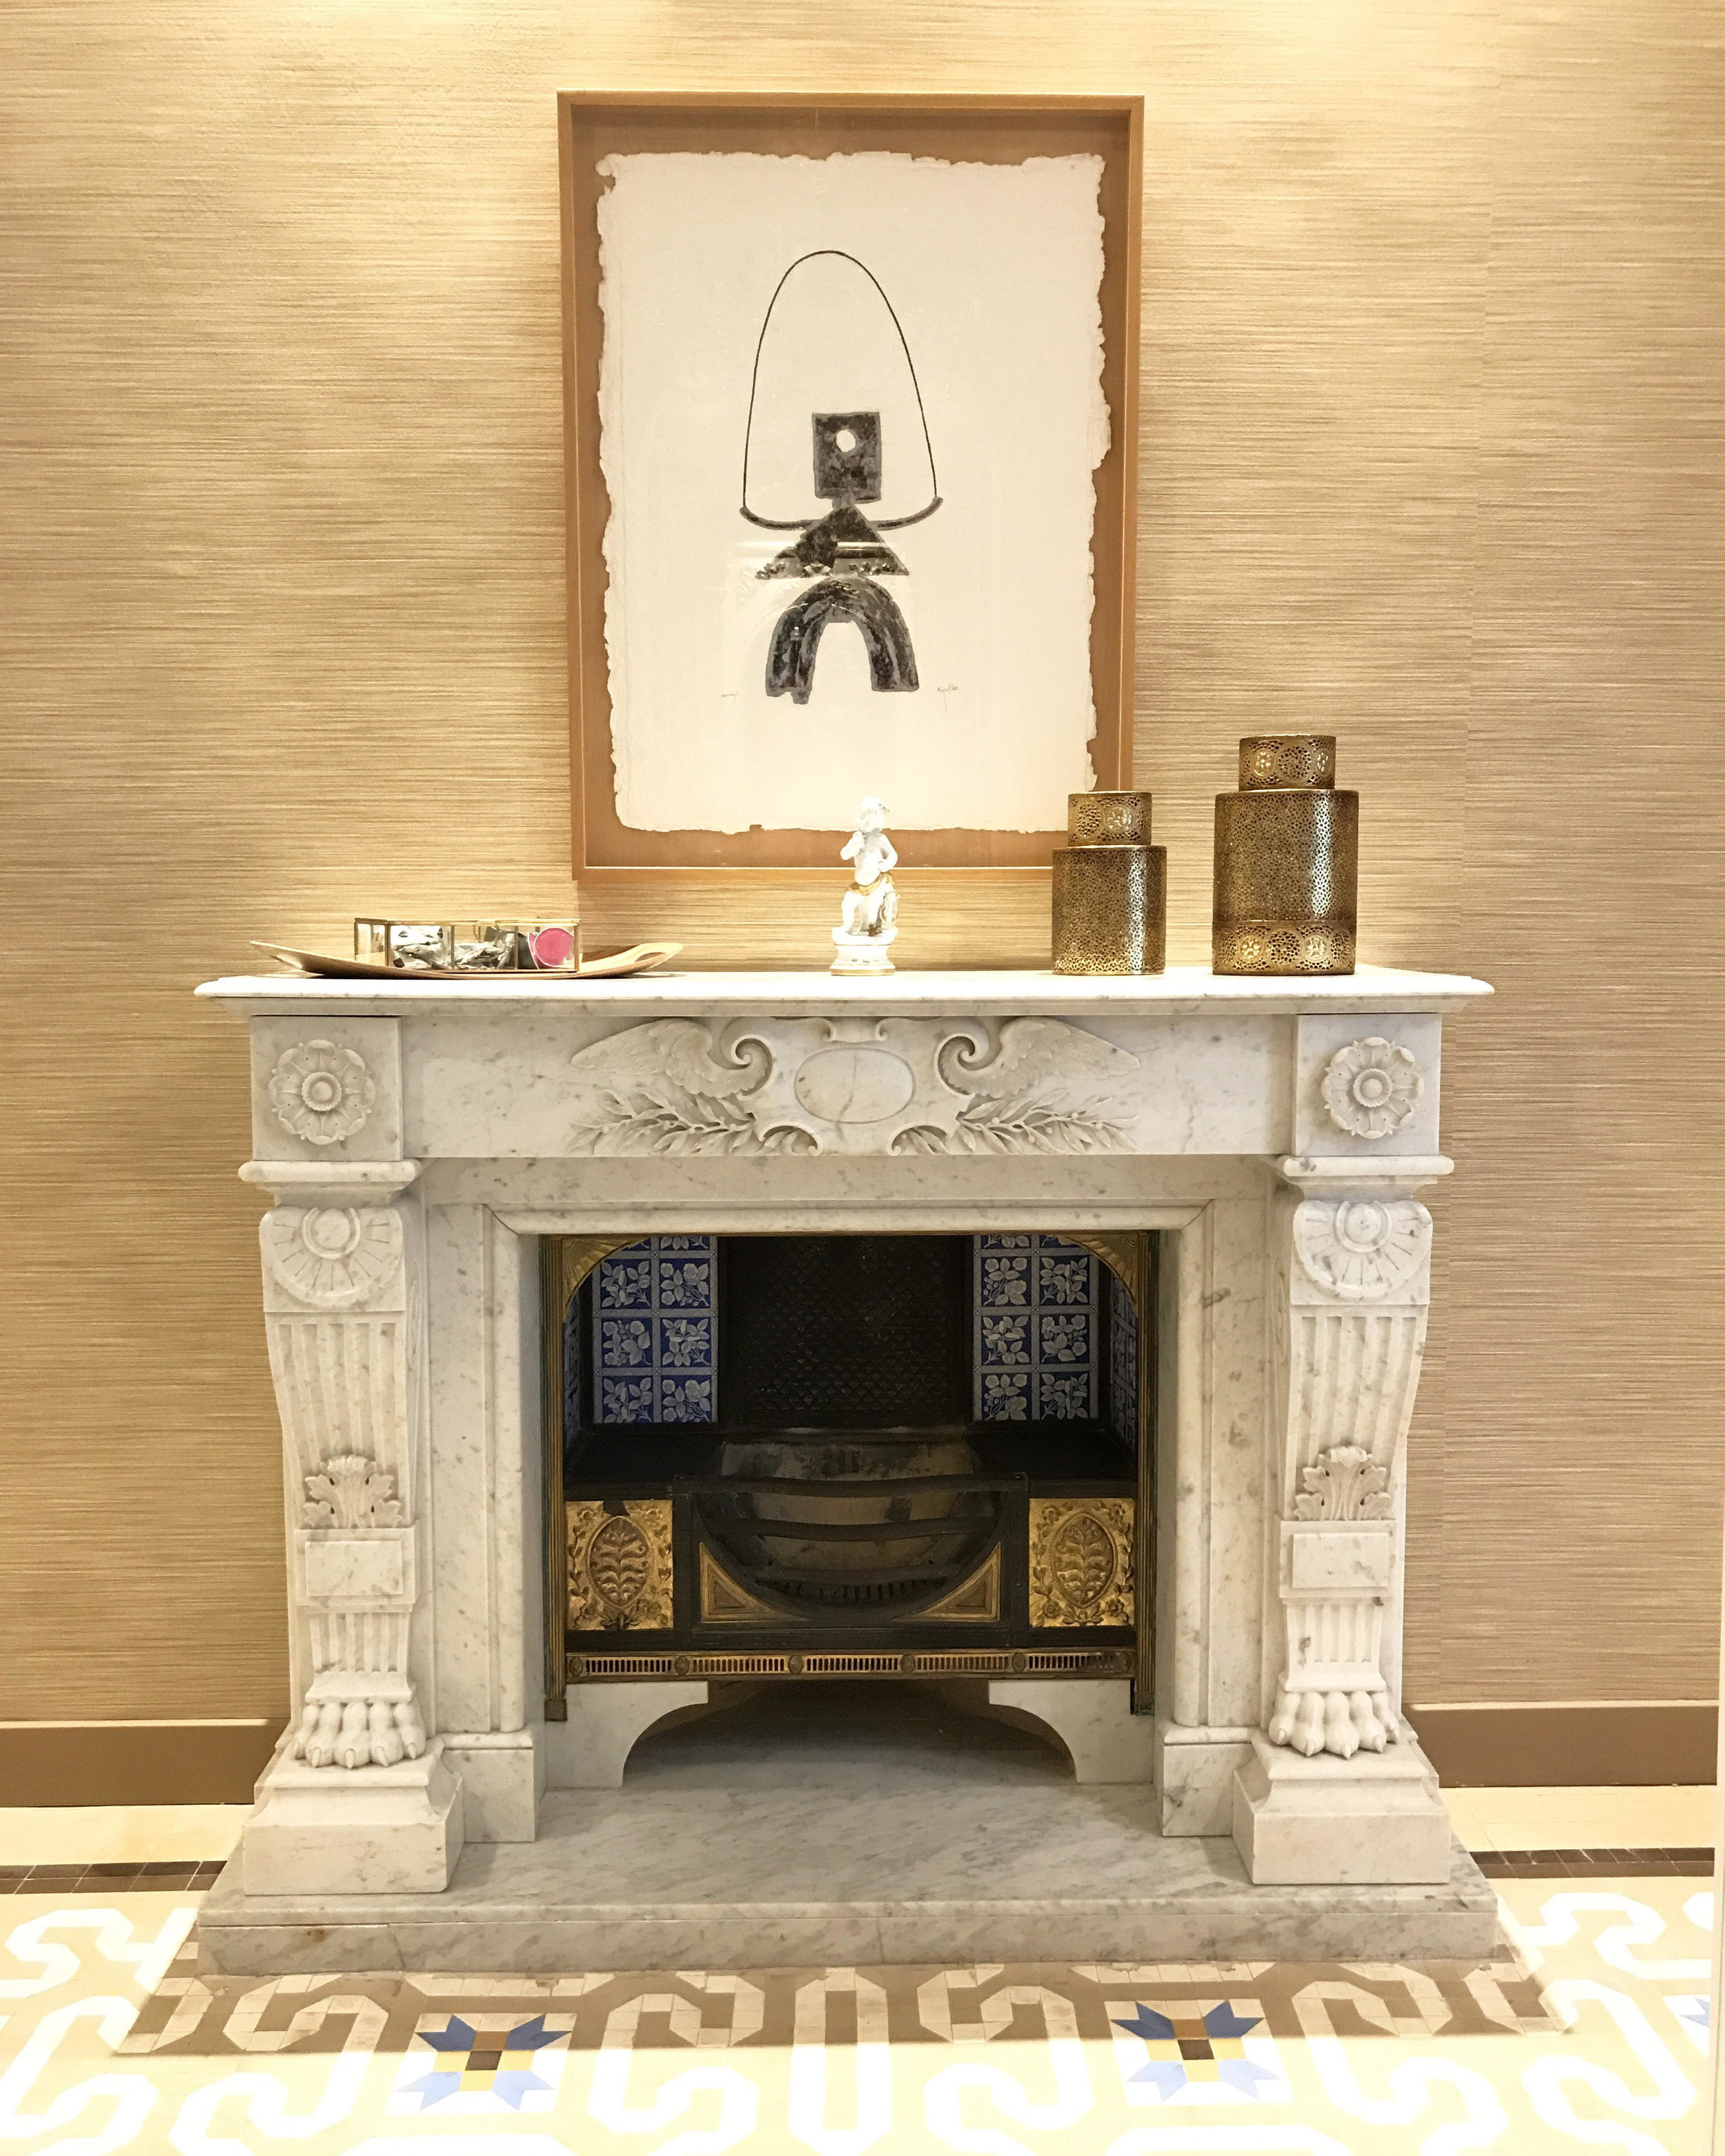 An image of a living room classic luxury marble fireplace with Asian influence accessories and textured silk wall coverings